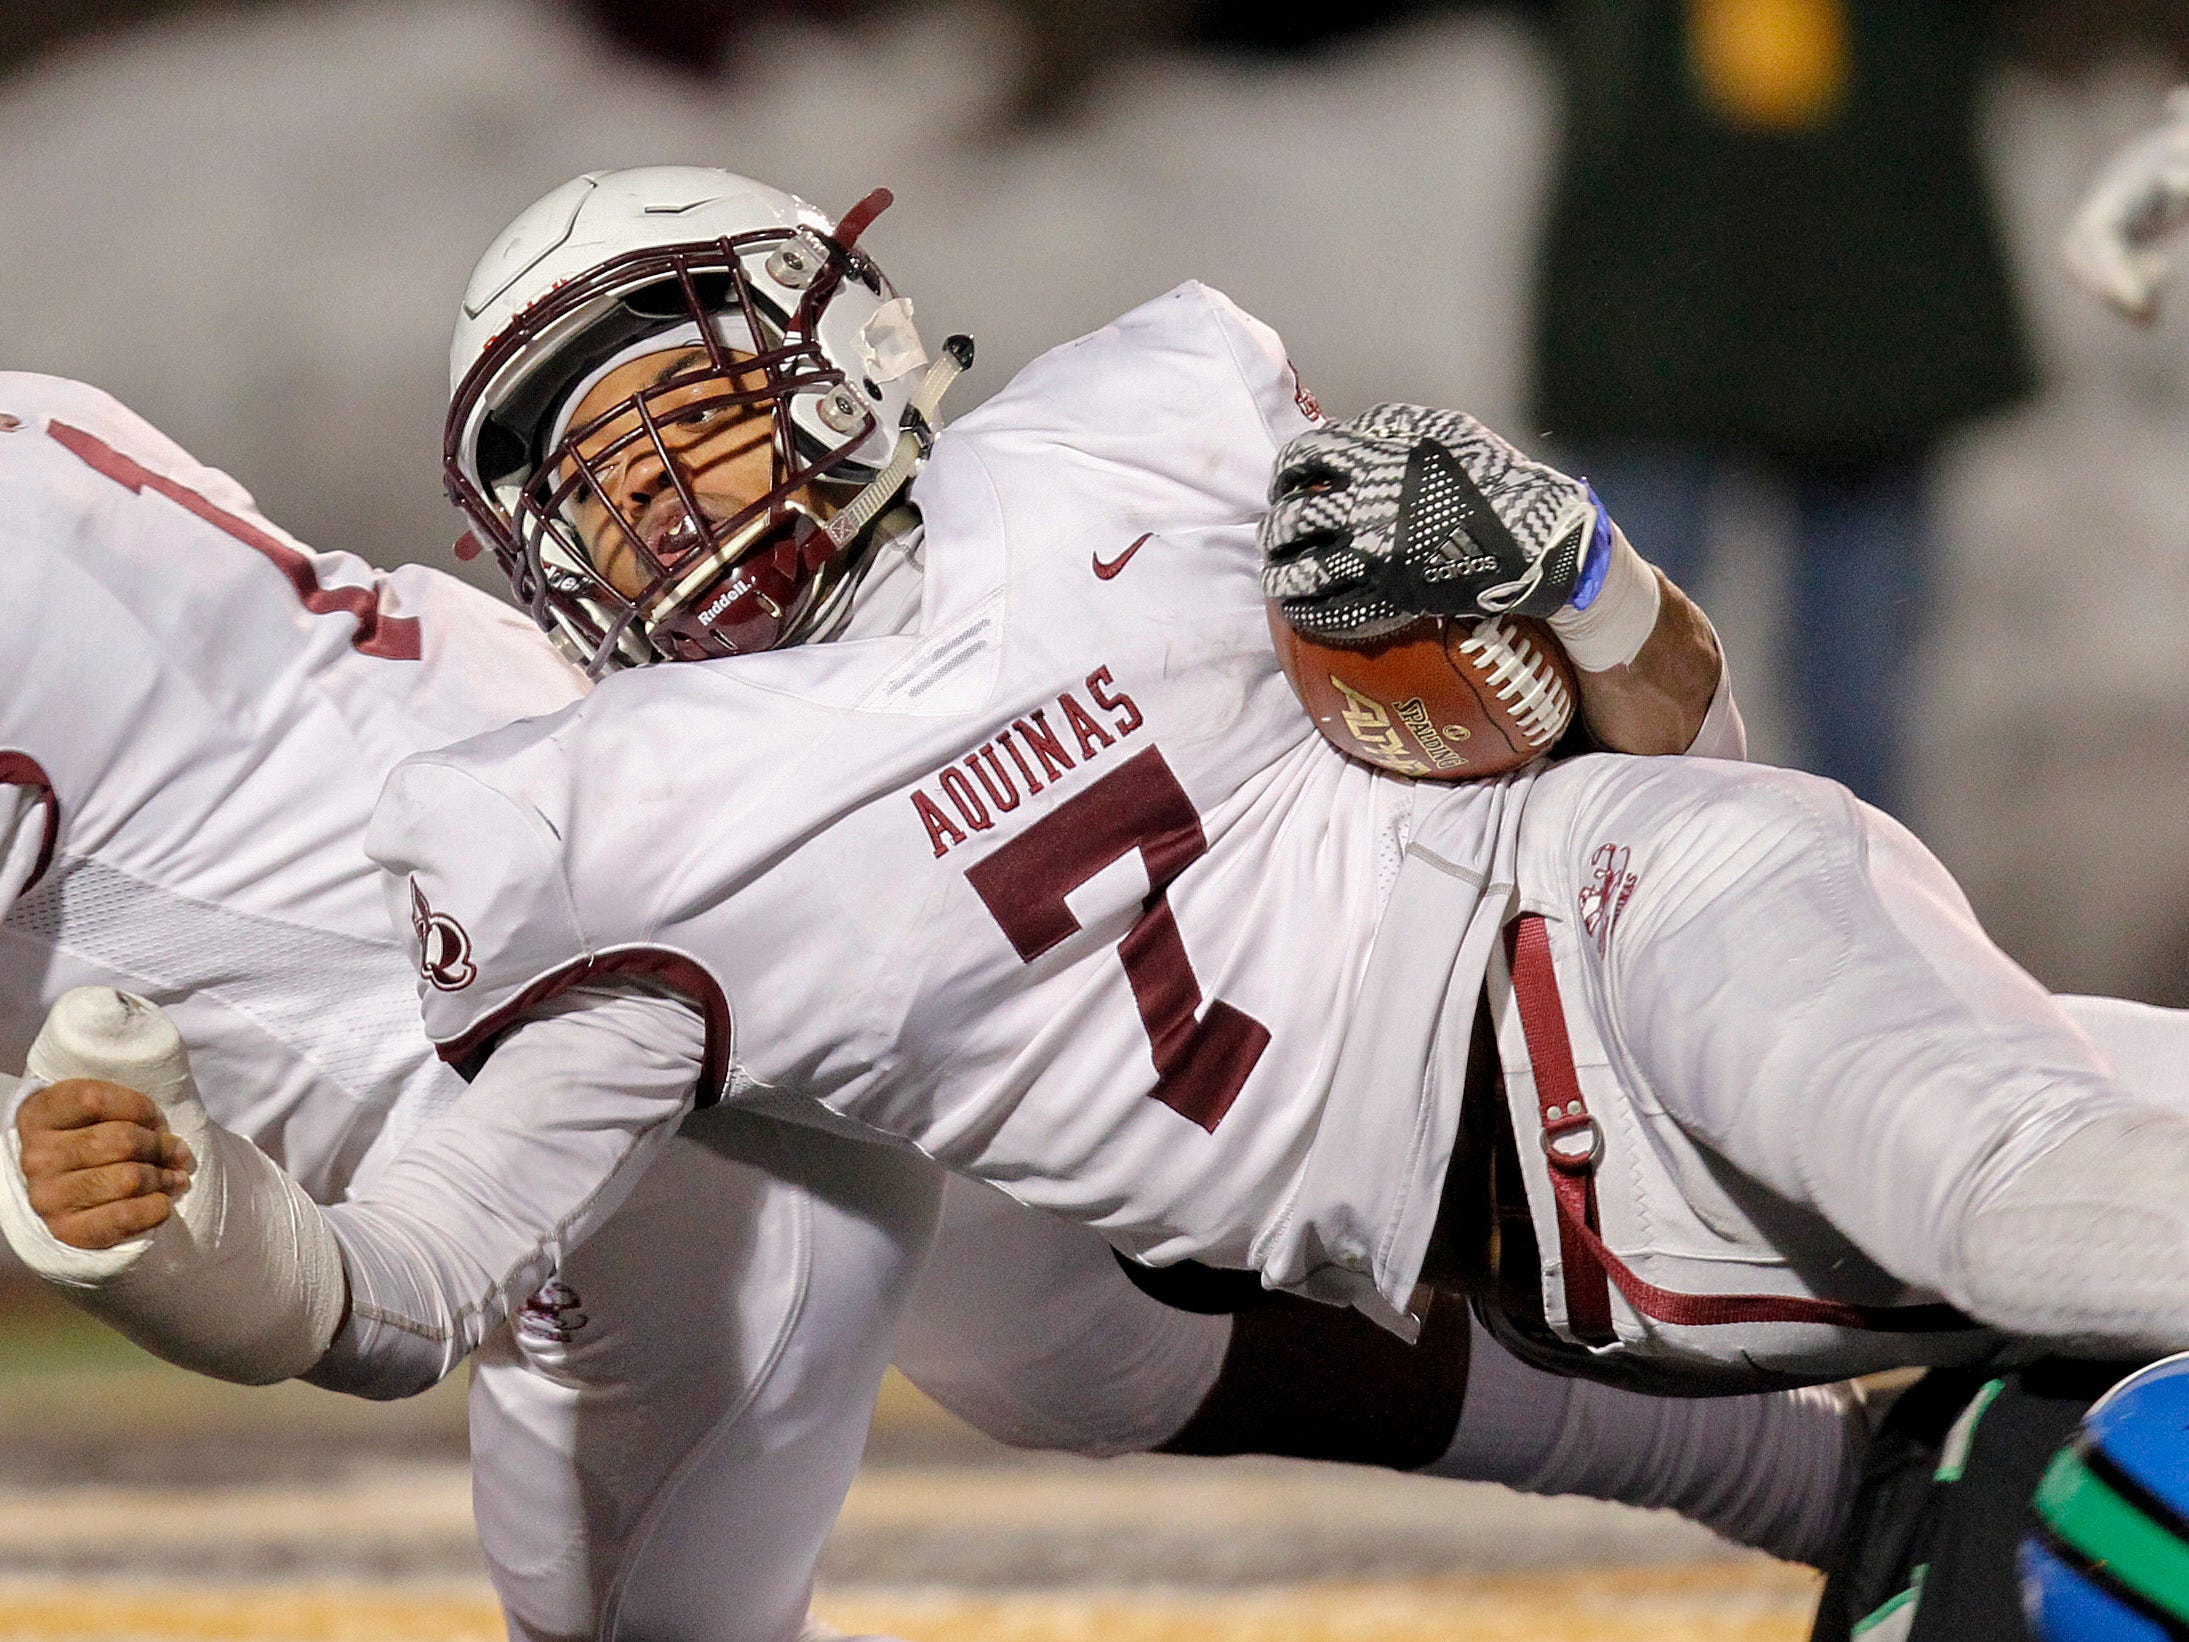 Aquinas' Ulysees Russell paves the way for teammate Caron Robinson against Cicero-North for a touchdown in the second quarter at Union-Endicott High School during state semifinals. Saturday, November 17, 2018.